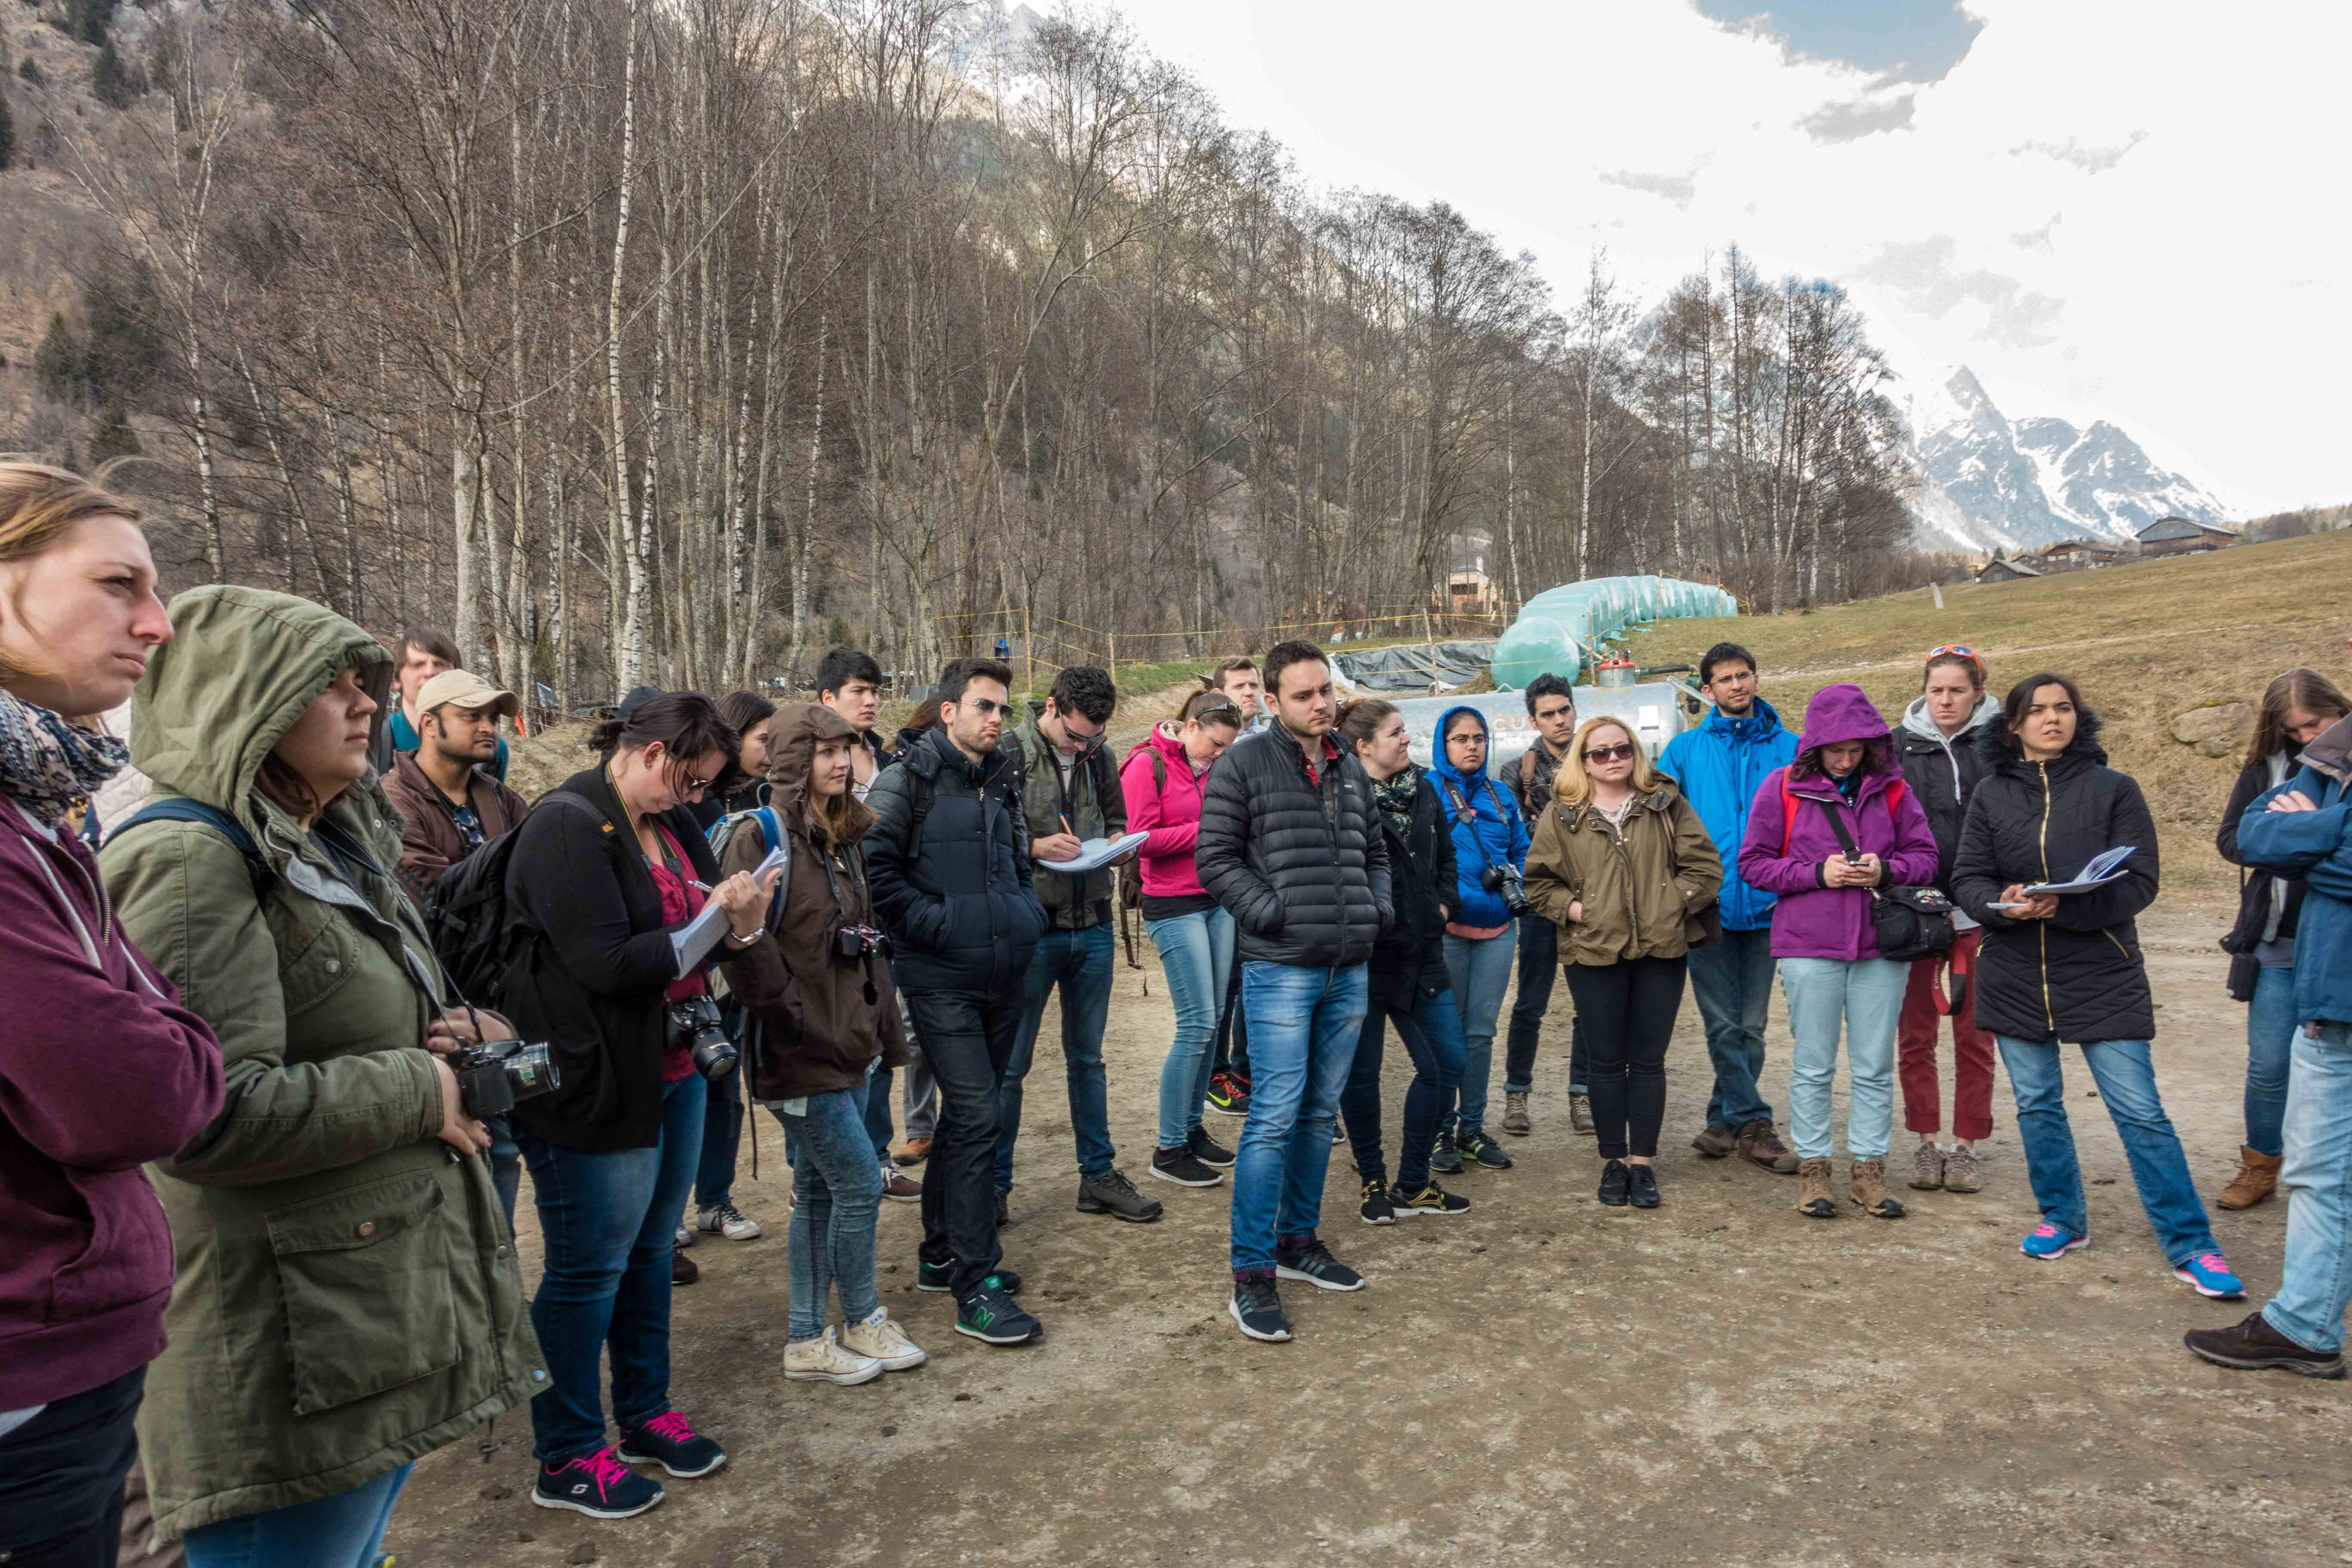 IMLA Main Project I in Italy: excursion to South Tyrol - Picture 2 © Prof. Fritz Auweck